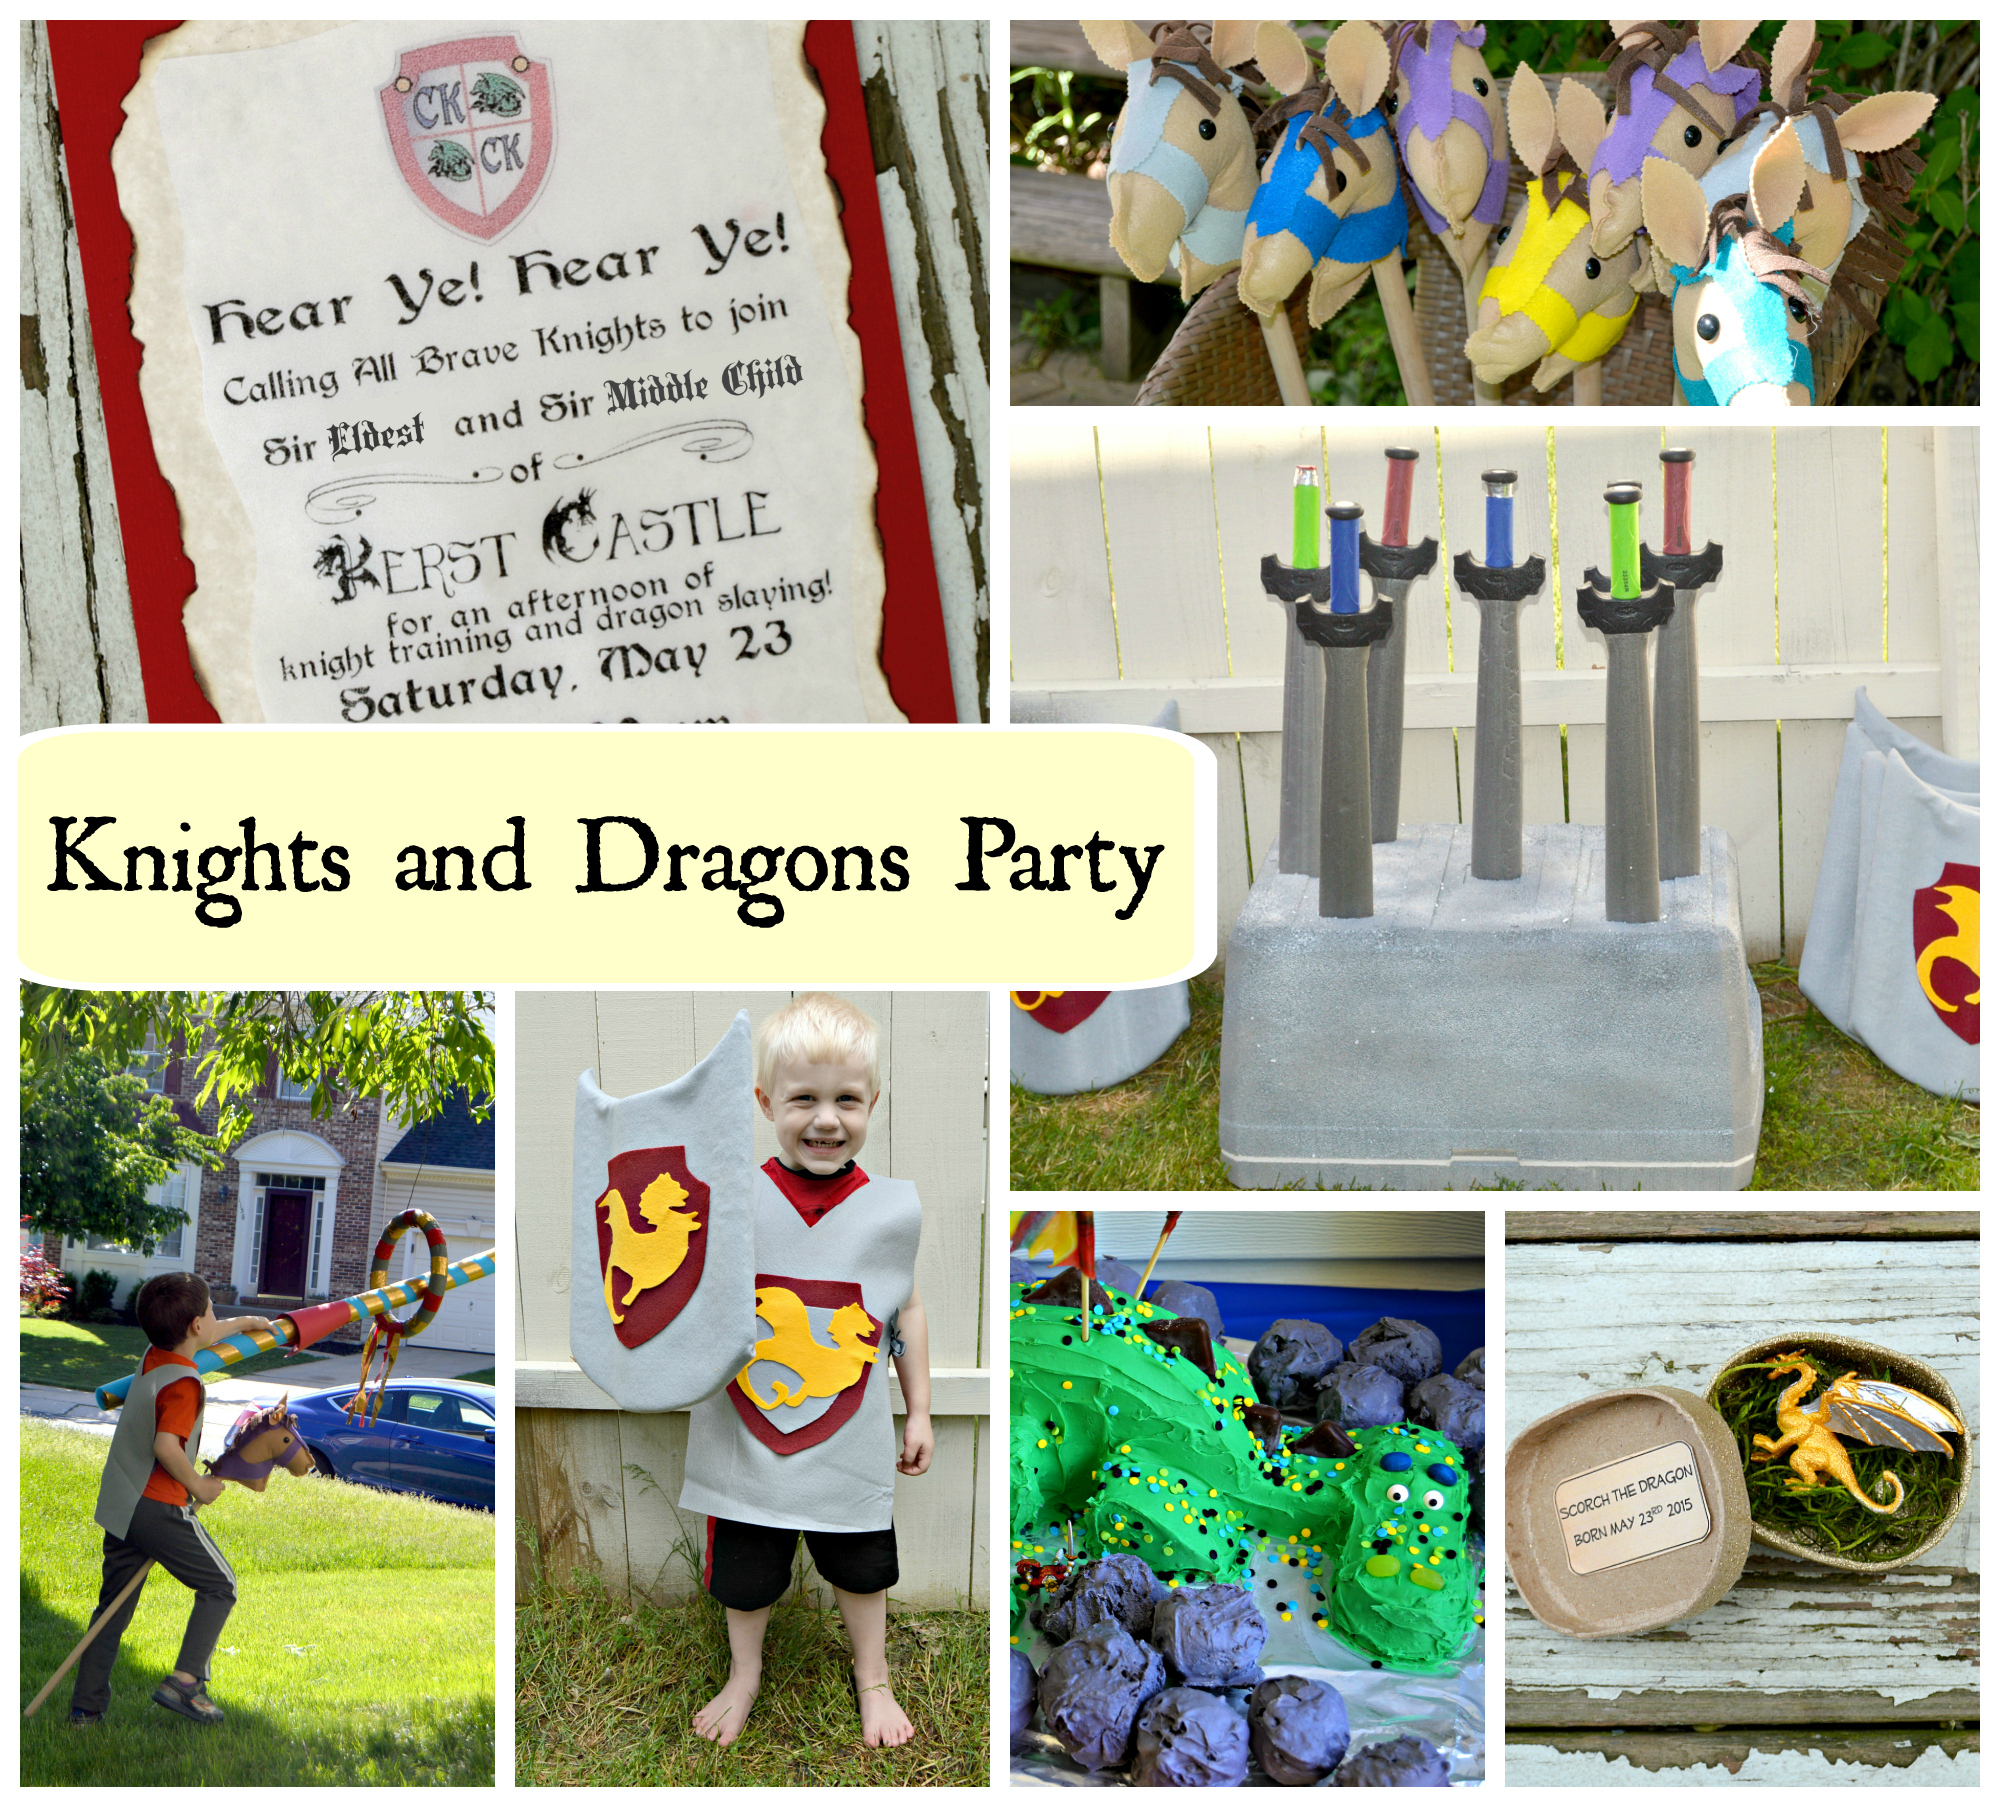 Knights and Dragons Party